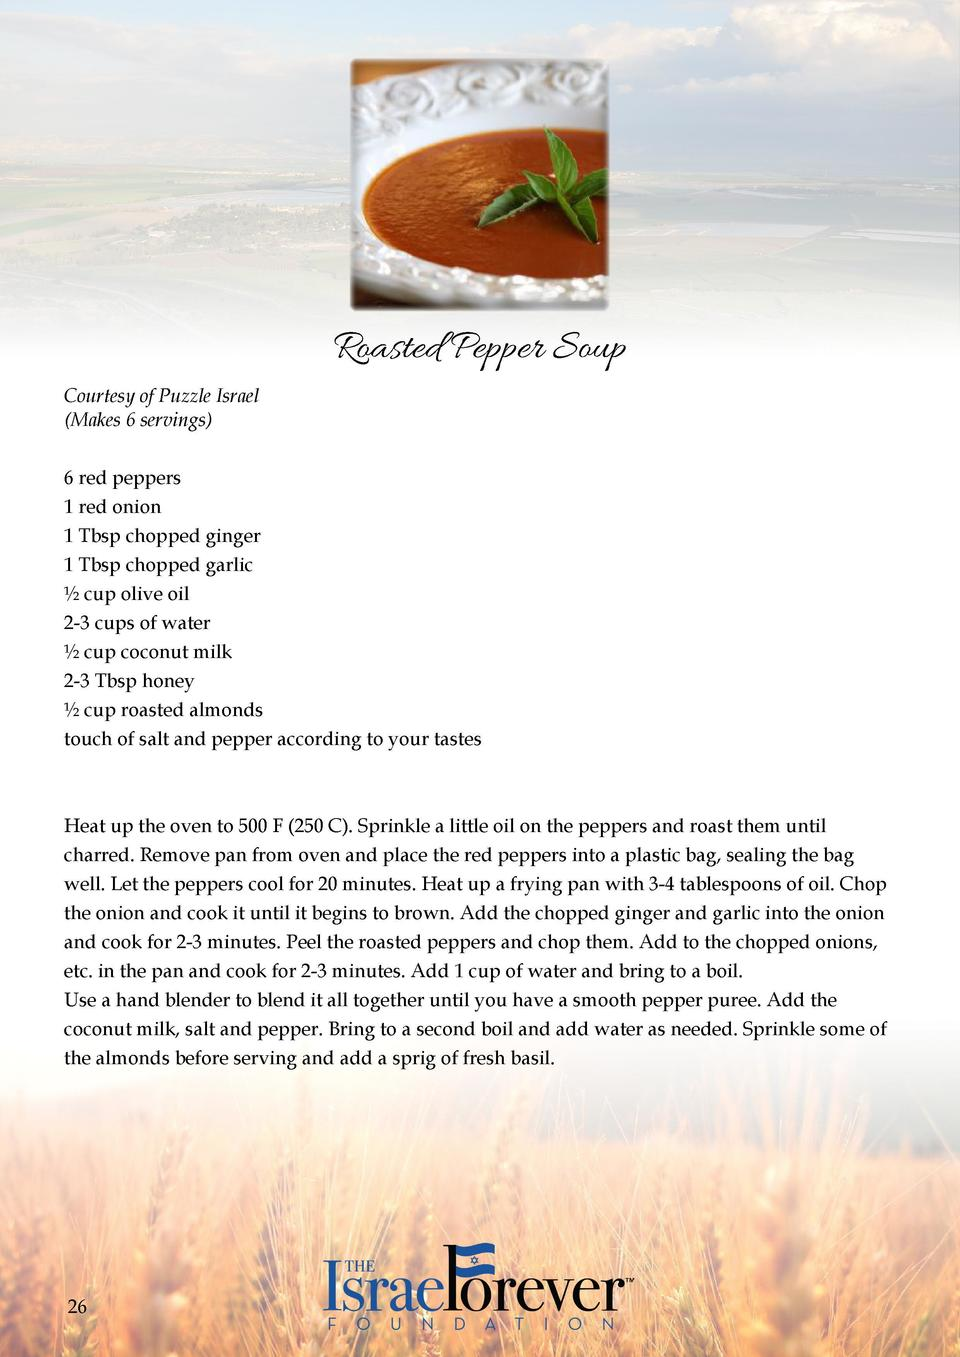 Roasted Pepper Soup Courtesy of Puzzle Israel  Makes 6 servings  6 red peppers 1 red onion 1 Tbsp chopped ginger 1 Tbsp ch...